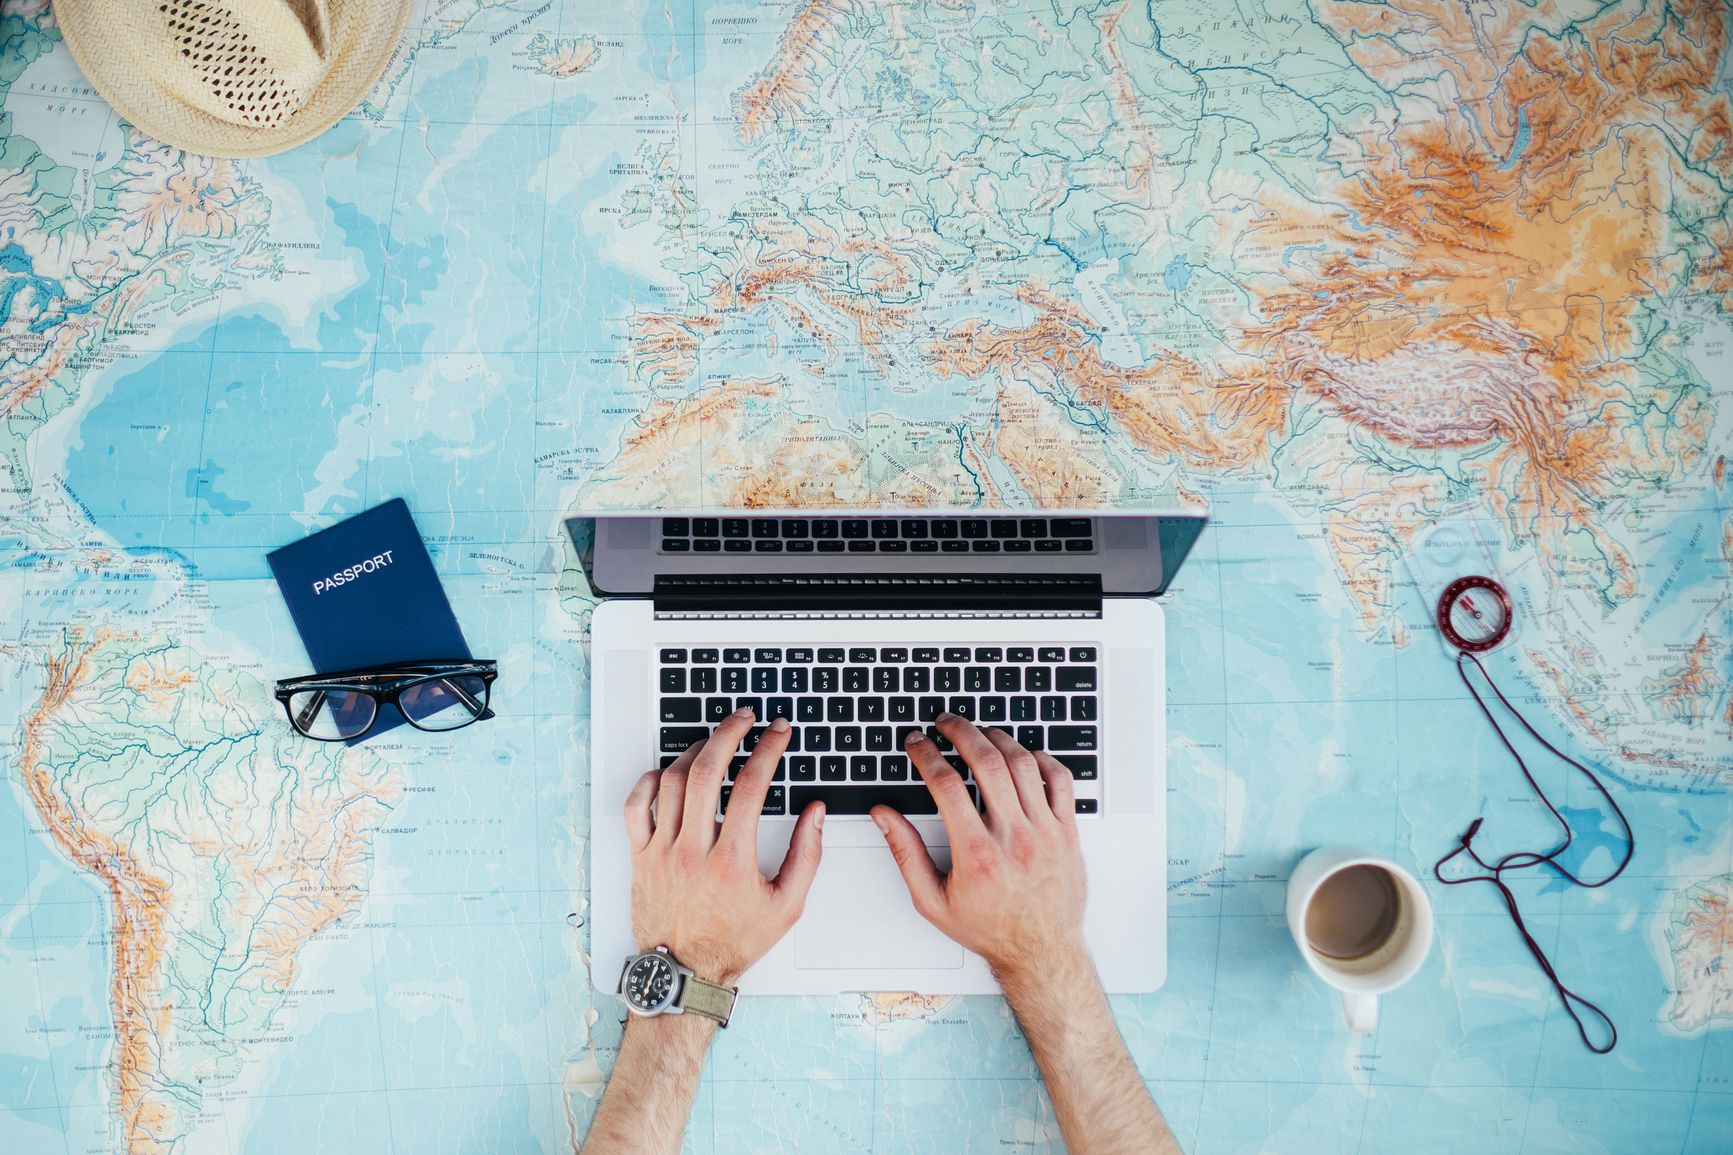 What Should I Do About My Current Trips?